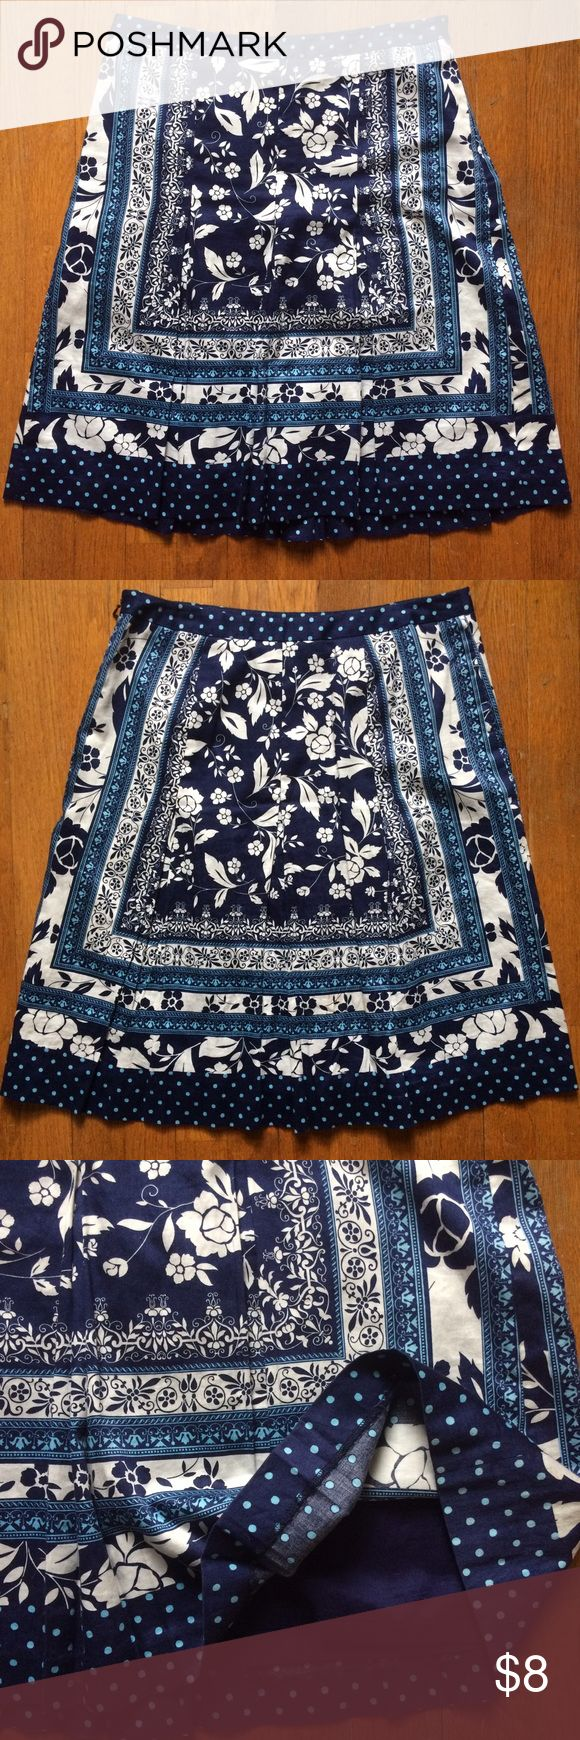 LOFT Blue and White Skirt Wasn't worn many times. Quality made skirt. 100% cotton. Lined. Comfortable fit. Sits on the hips. Hits a little below my knees (I'm 5'0). LOFT Skirts